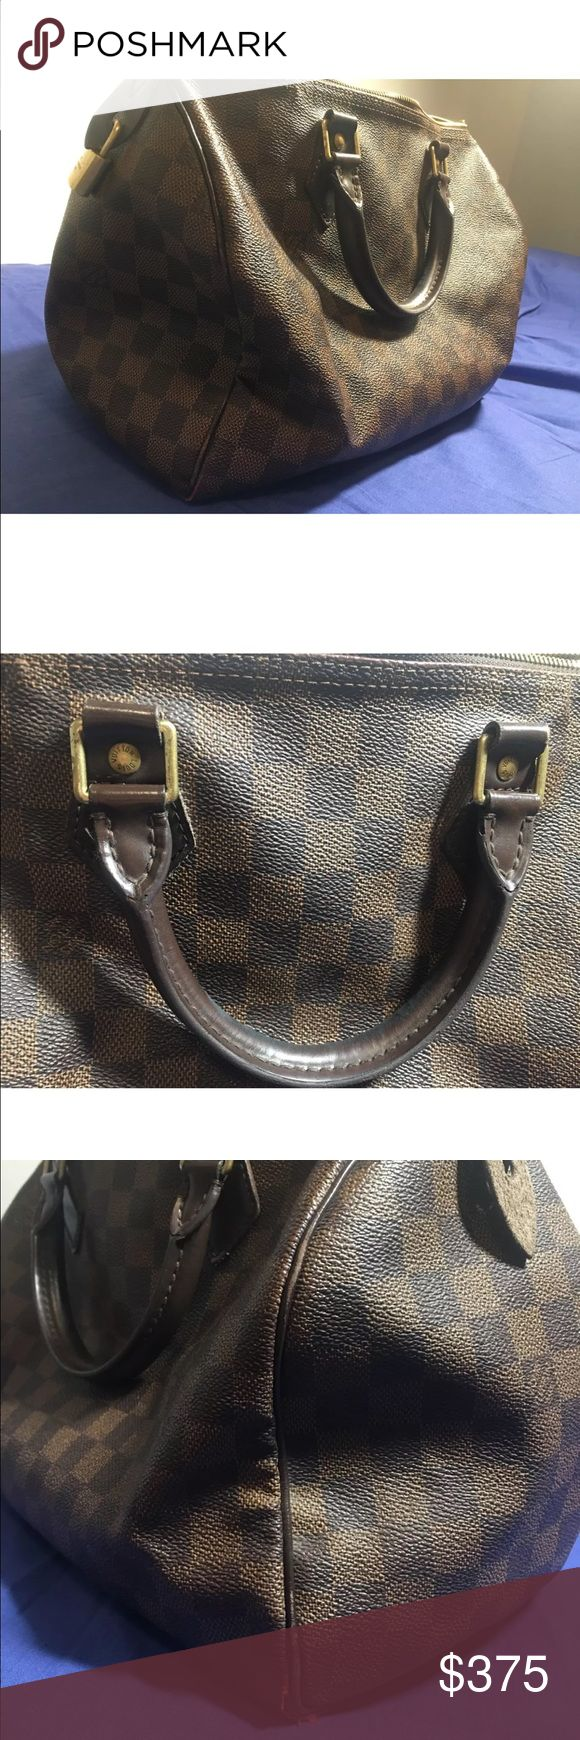 Louis Vuitton speedy bag used Bag is worn, please see pictures. Little damage in the corner, bag is a little stained in the inside. Louis Vuitton Bags